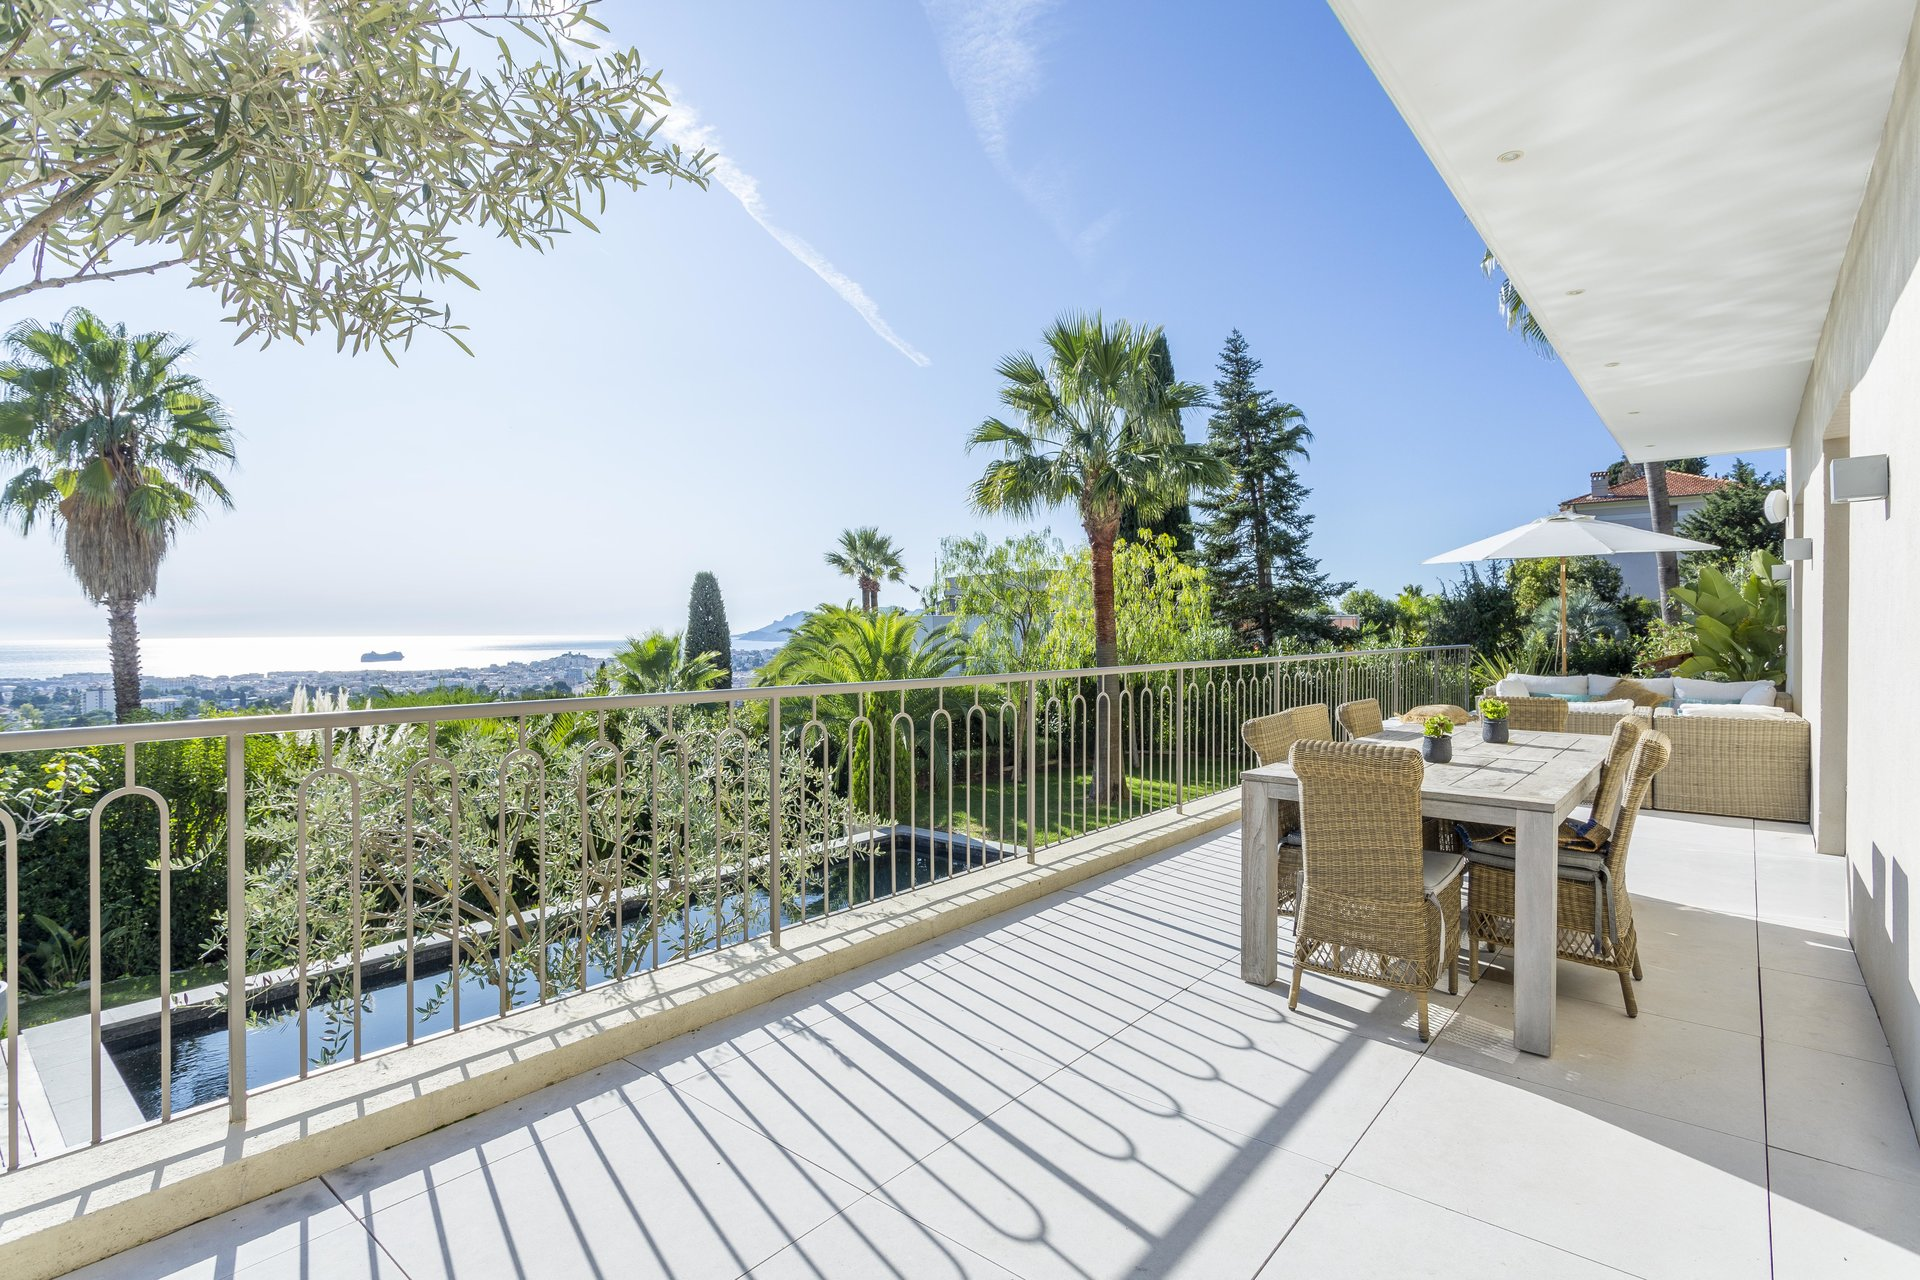 HEIGHTS OF CANNES – SEA VIEW BAY OF CANNES